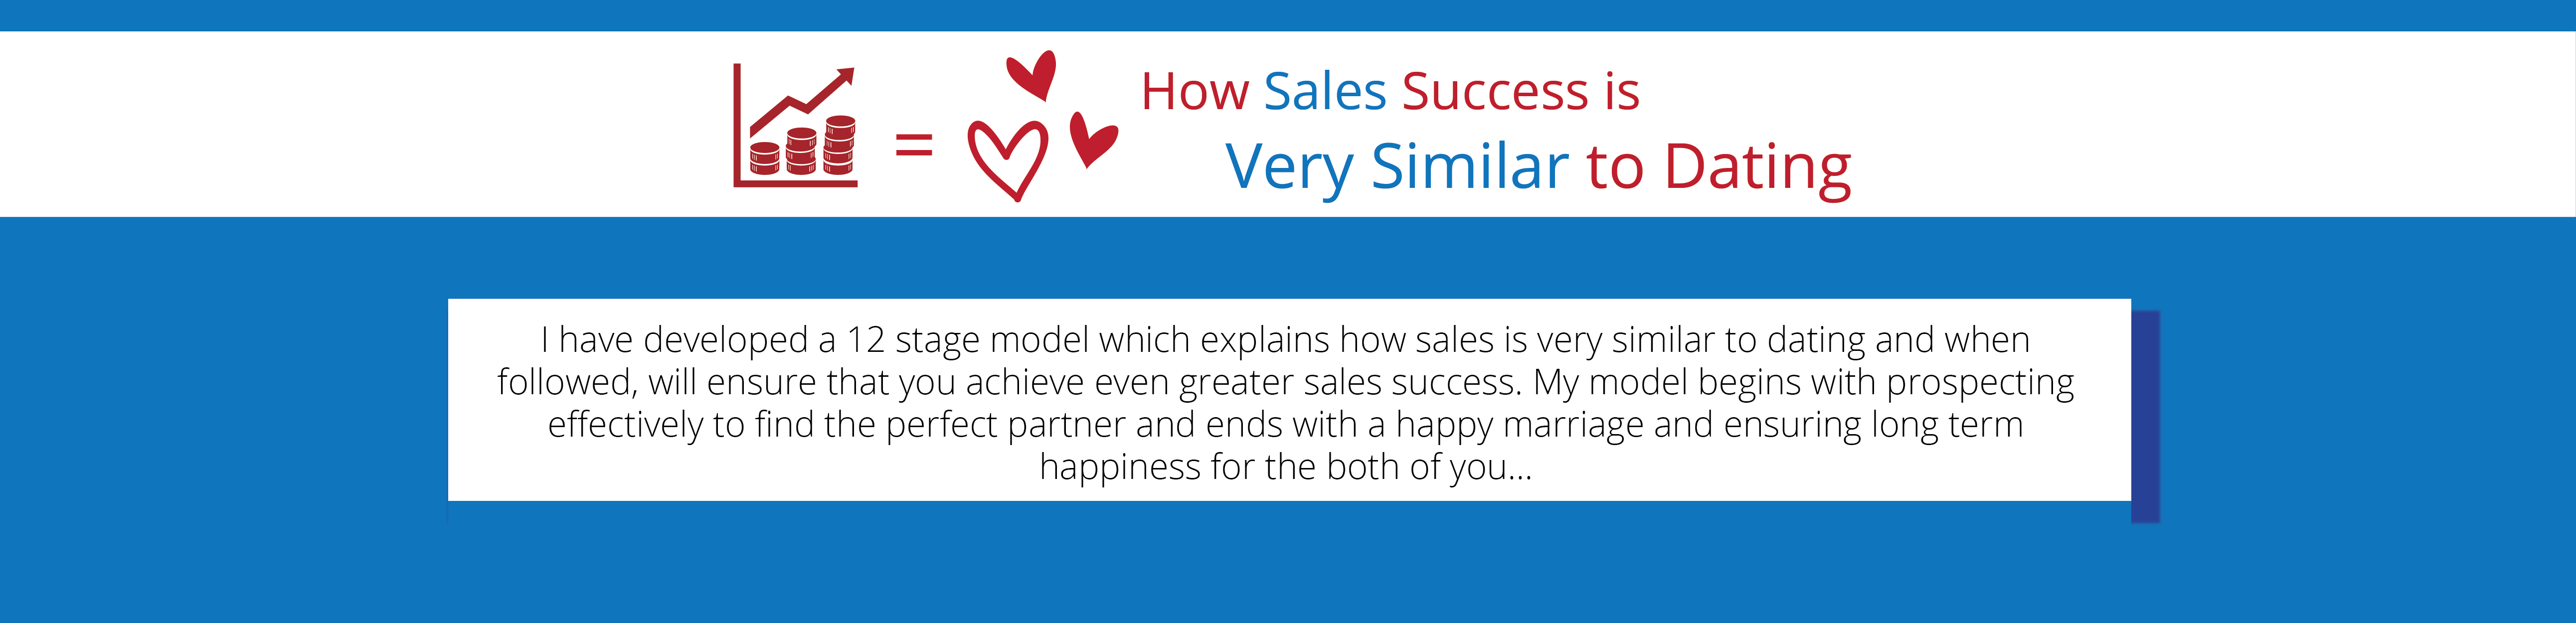 Winning in Sales is Like Falling in Love